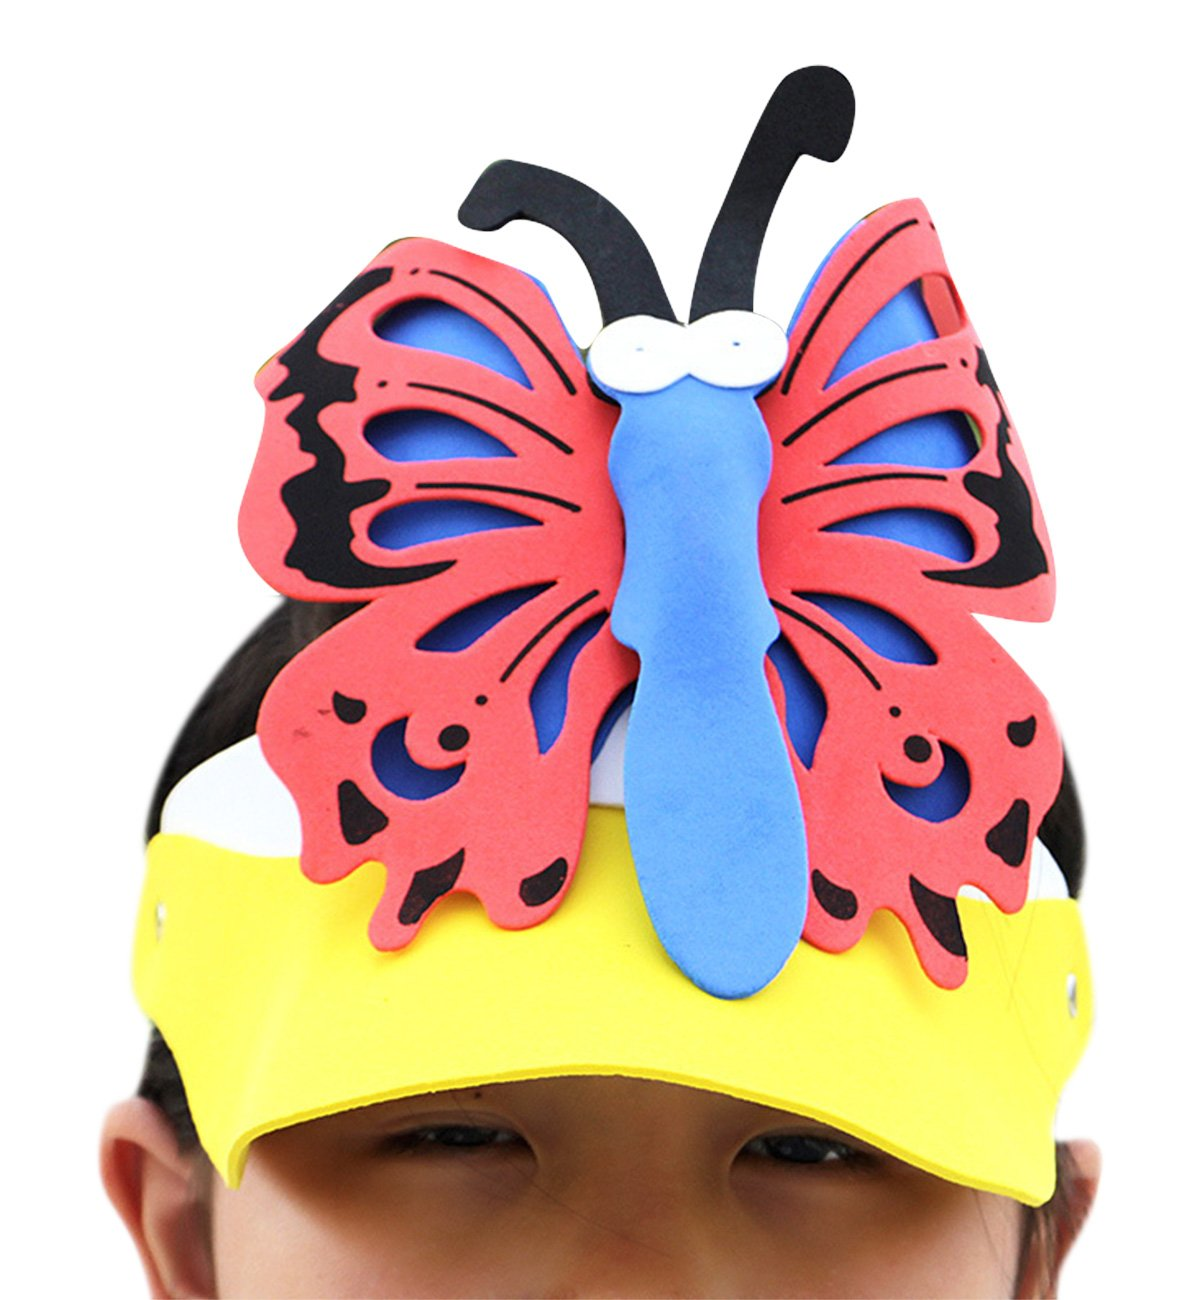 fb505d70965 Galleon - Sumolux Foam Zoo Animal Sun Visors Headgear Party Performance  Story Game Props Hat